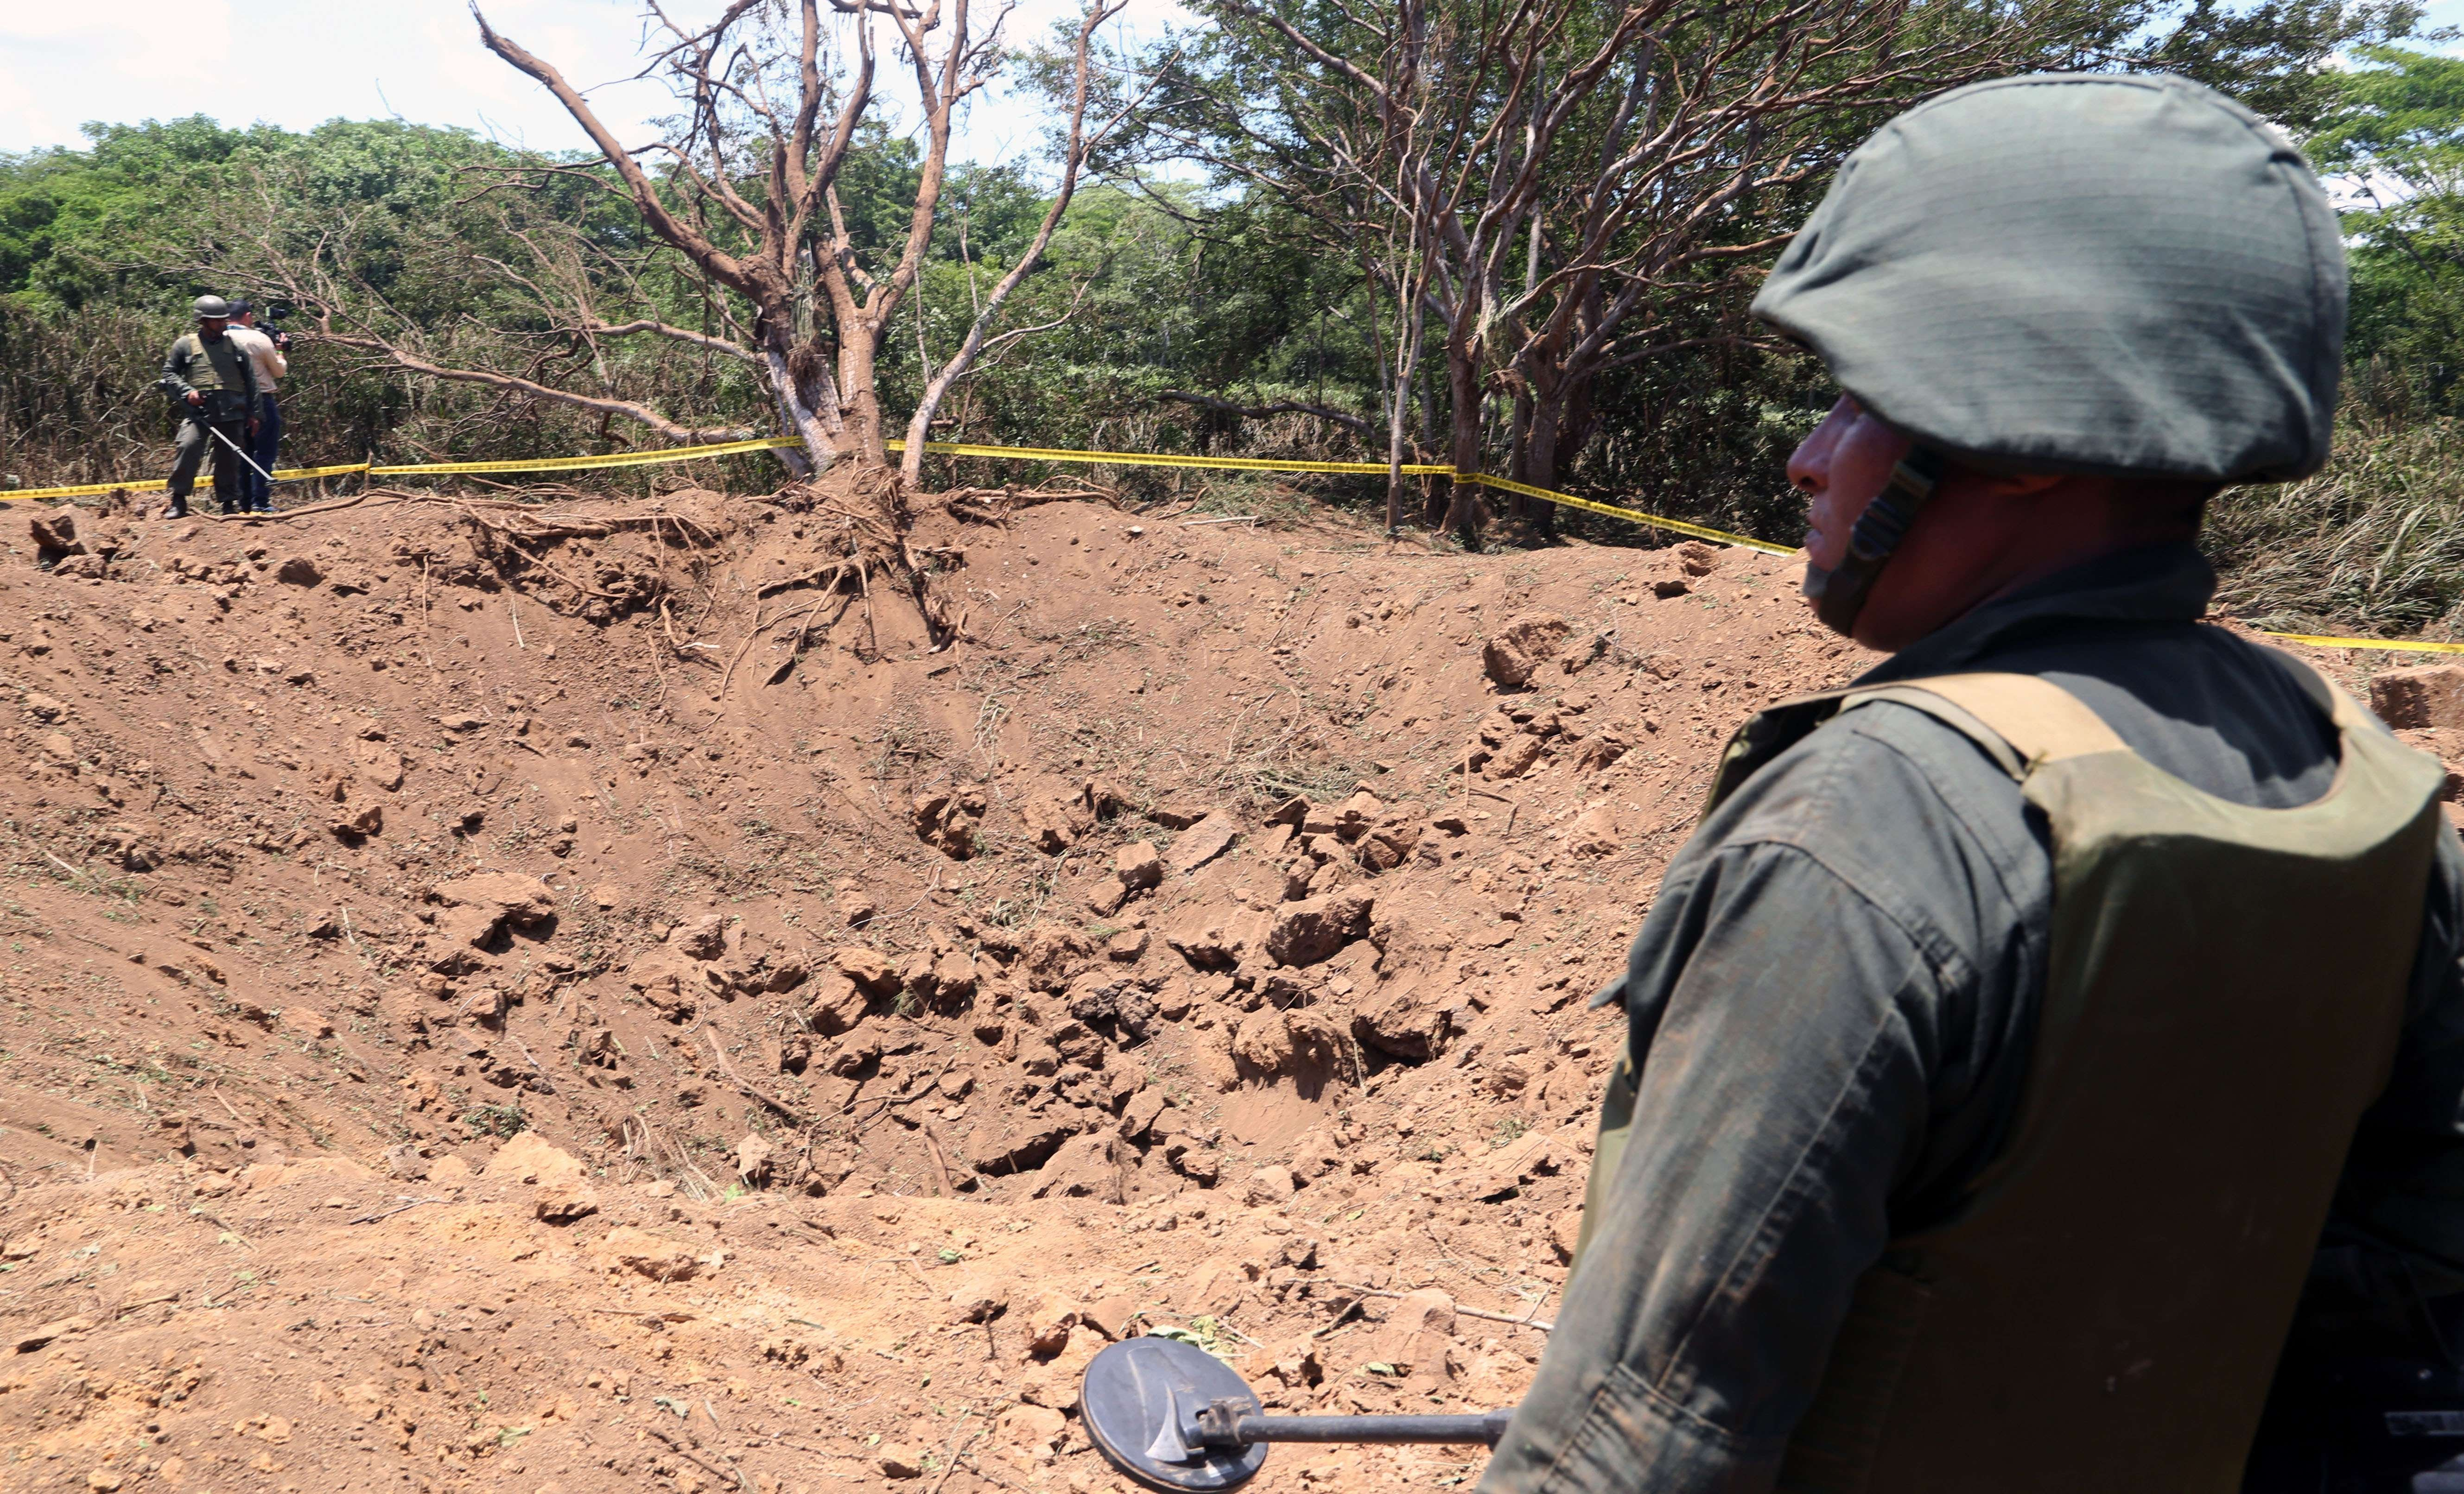 A Nicaraguan soldier checks the site where an alleged meteorite struck on Sept. 7, 2014 in Managua.